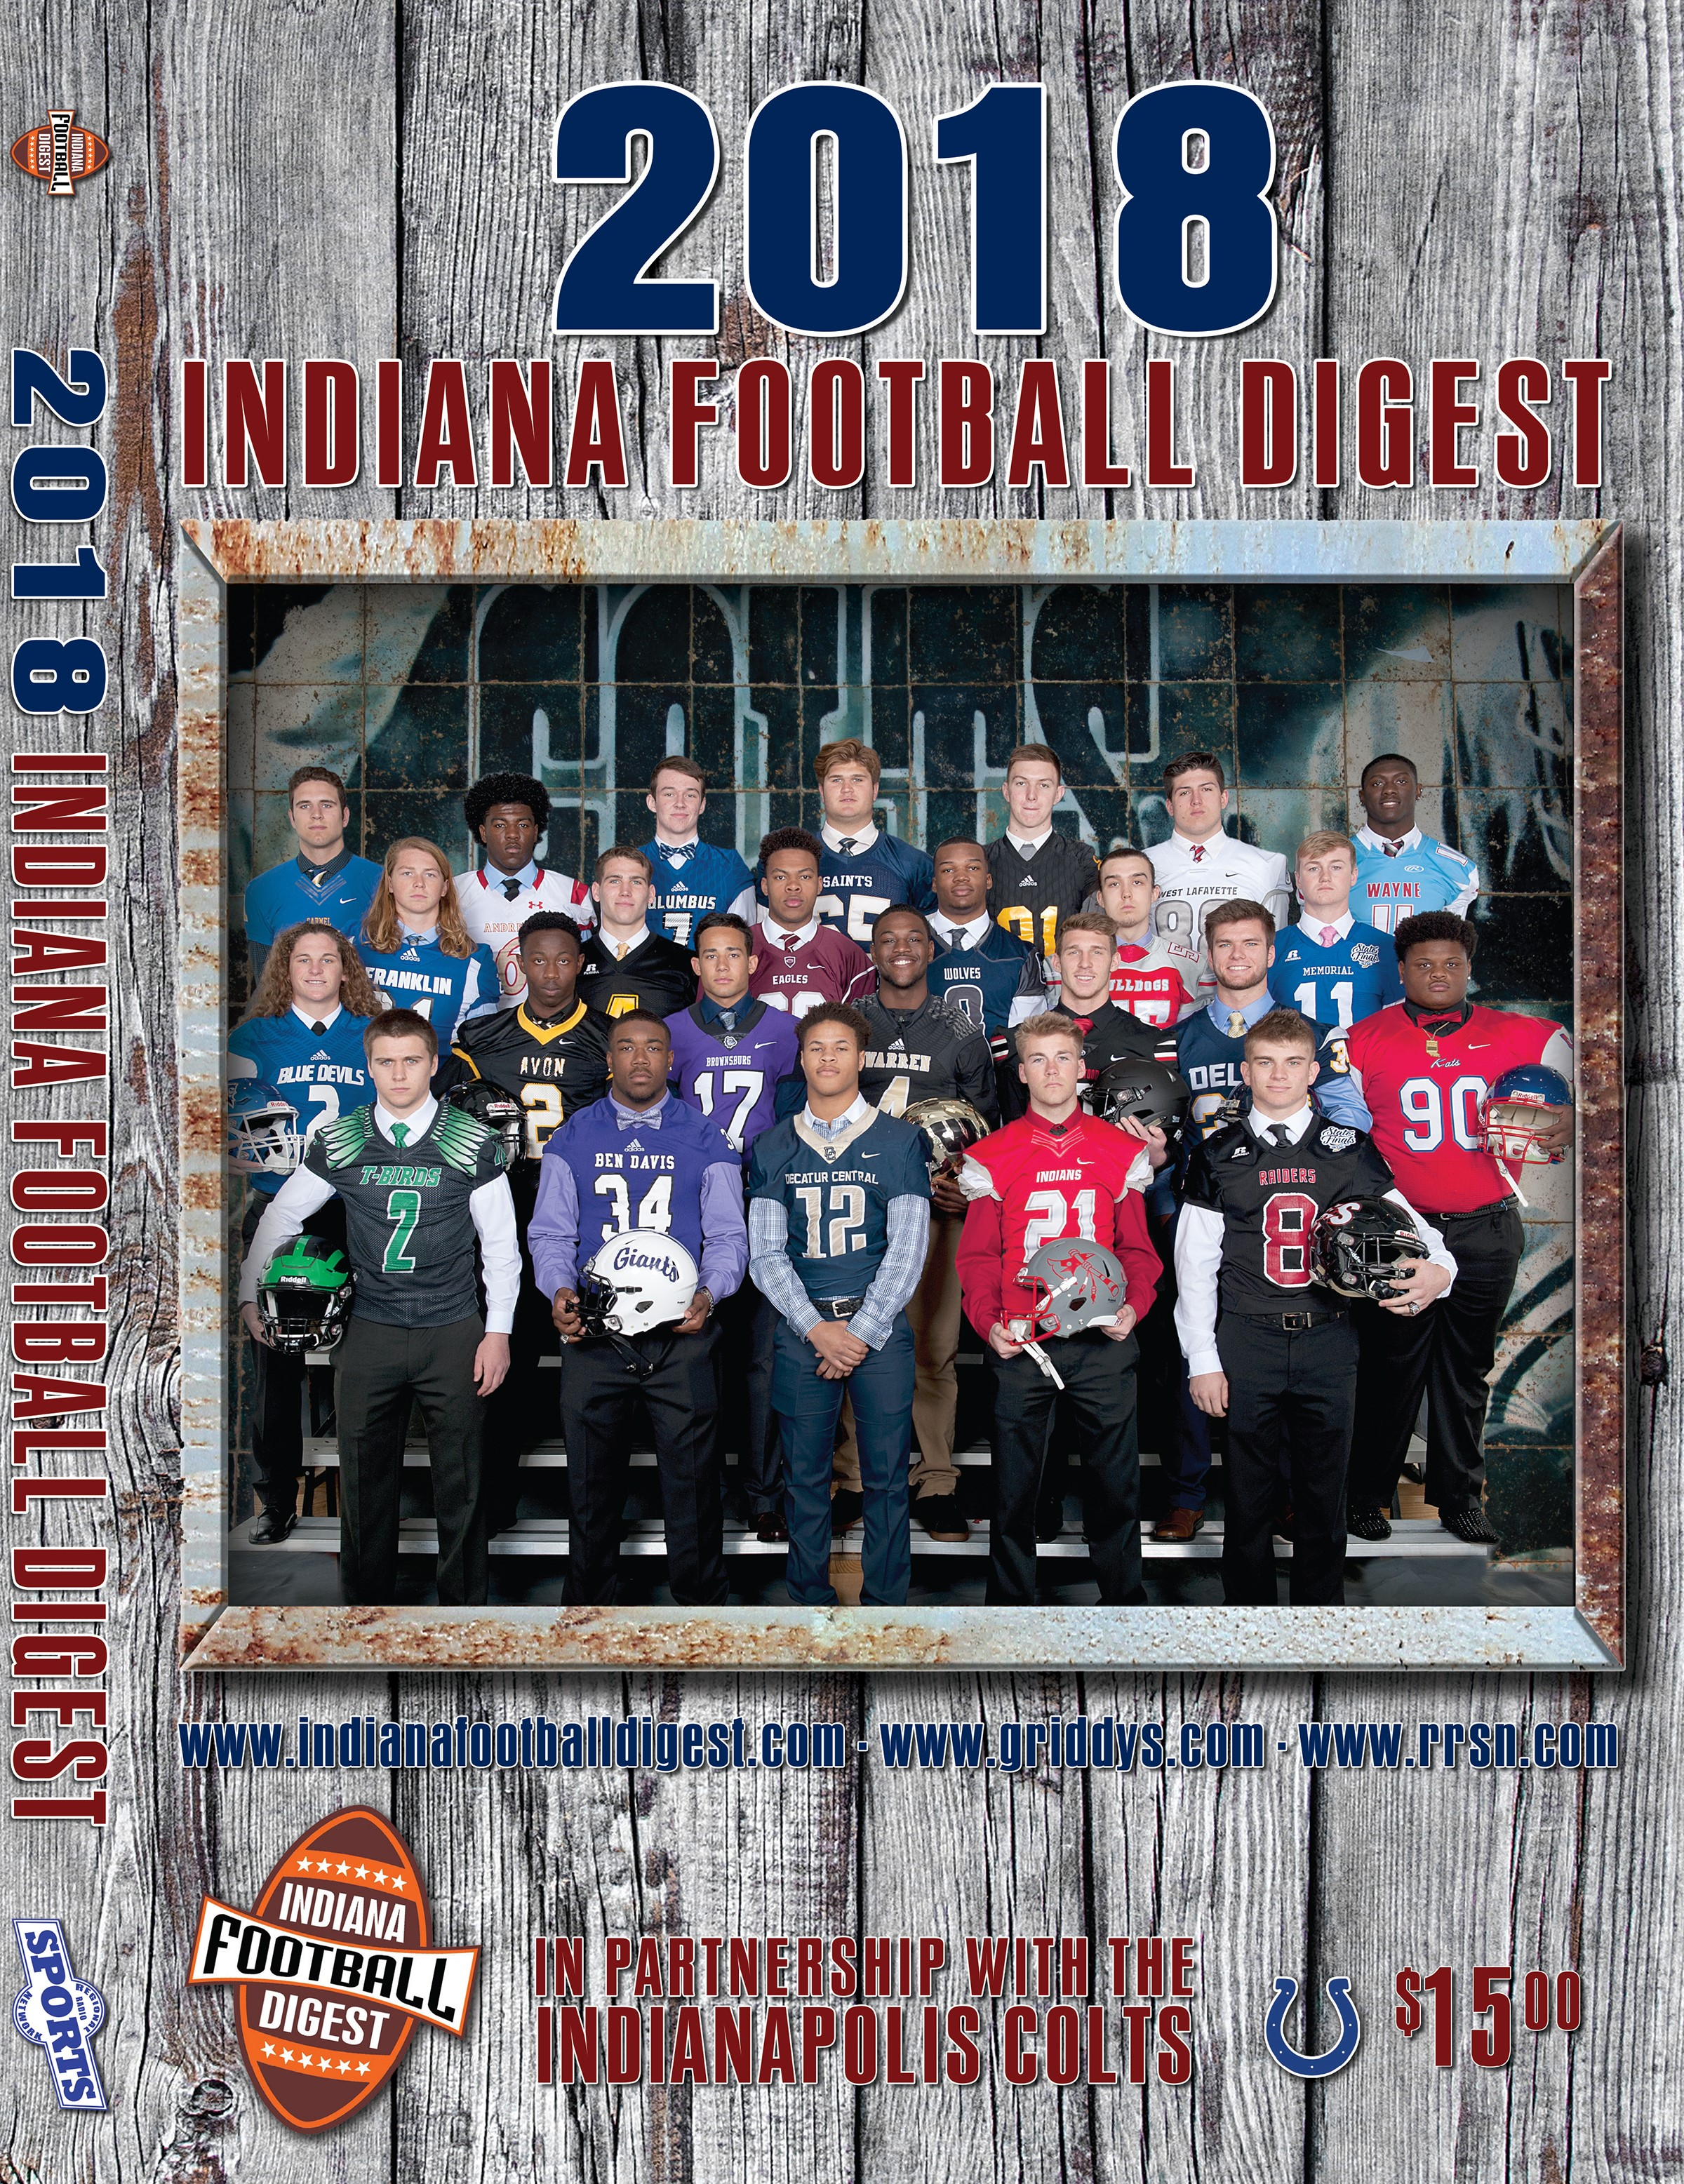 2018 Indiana Football Digest